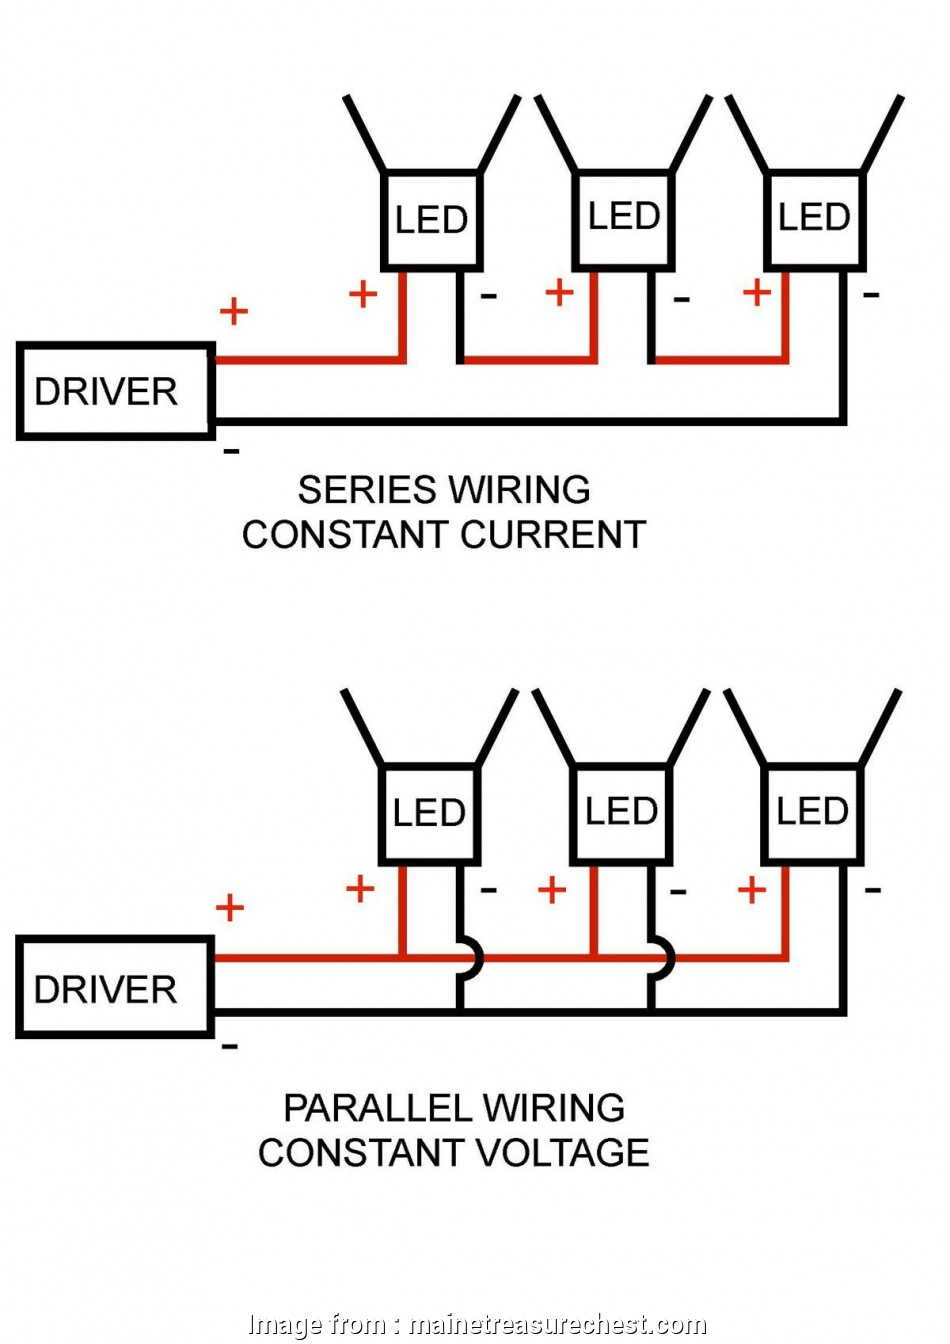 hight resolution of wiring recessed lights parallel diagram wiring diagrams 6 recessed lighting in series fresh wiring diagram